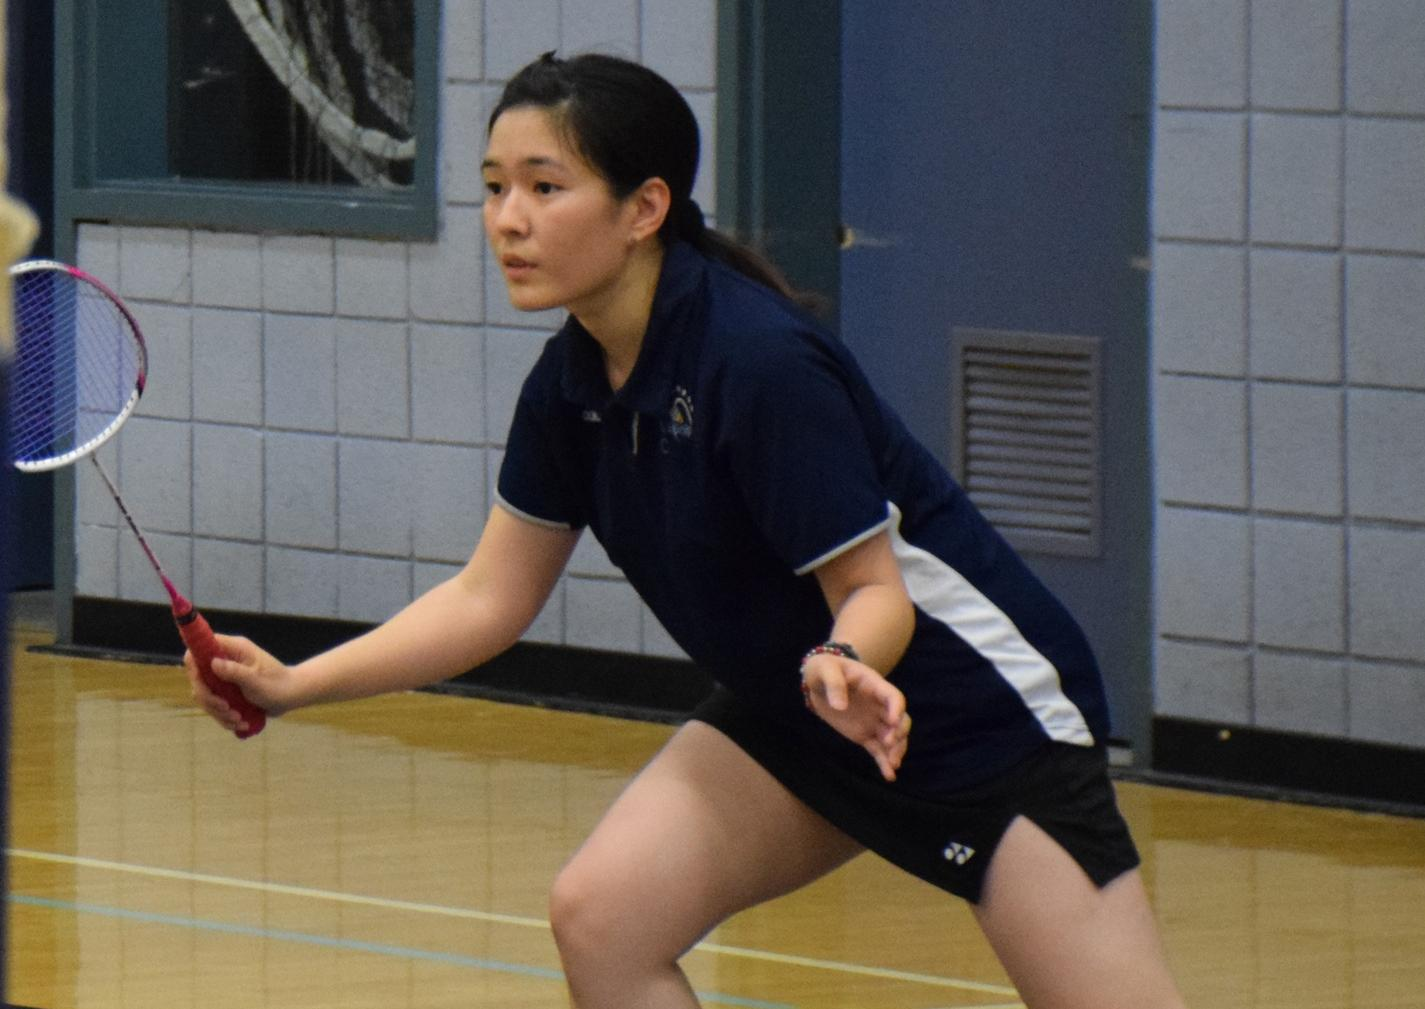 Women's badminton team continues to roll in conference